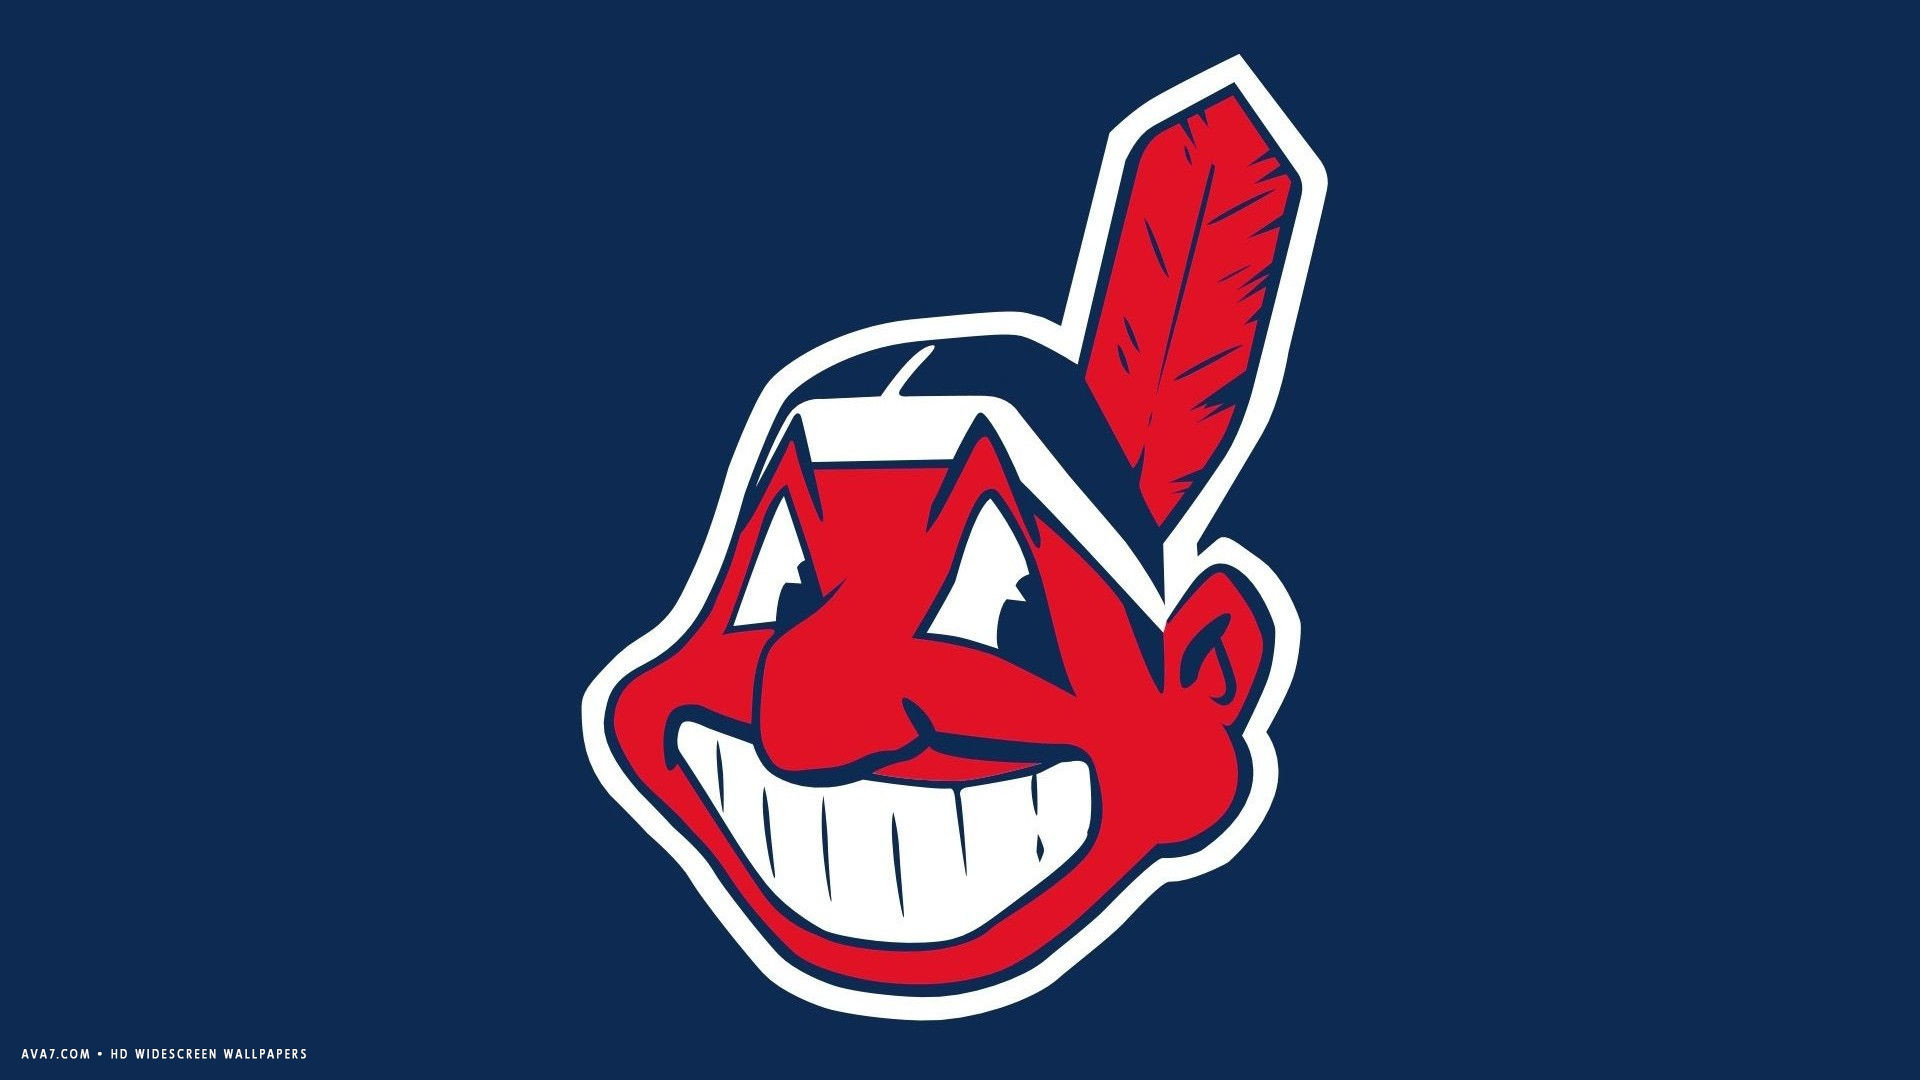 1920x1080 cleveland indians mlb baseball team hd widescreen wallpaper